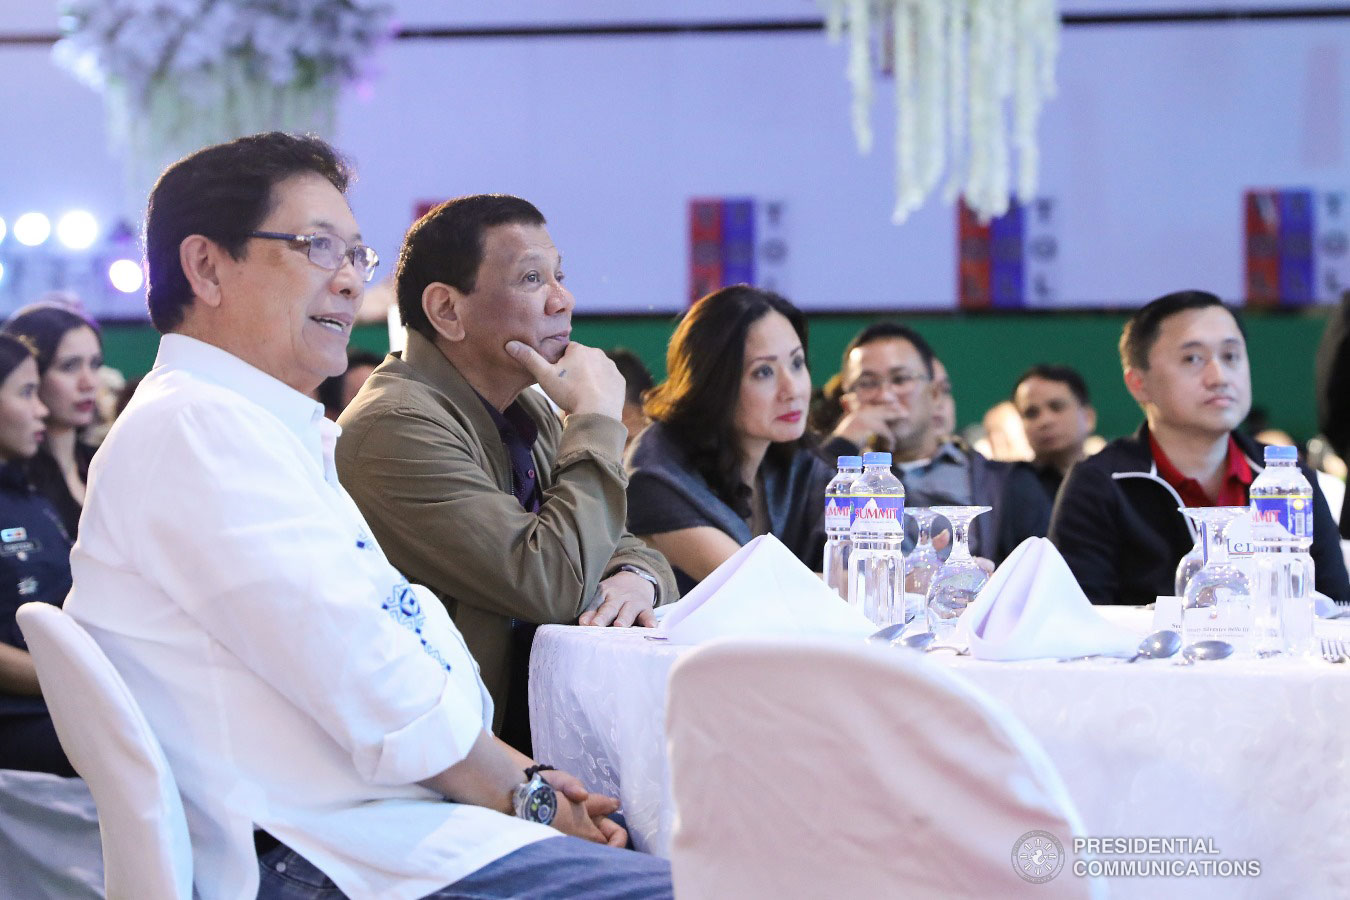 """President Rodrigo Roa Duterte witnesses the program proper during the birthday celebration of former Presidential Adviser on Political Affairs Atty. Francis Tolentino at the Tagaytay International Convention Center in Tagaytay City, Cavite on January 3, 2019. Joining the President are Labor and Employment Secretary Silvestre Bello III and former Special Assistant to the President Christopher Lawrence """"Bong"""" Go. VALERIE ESCALERA/PRESIDENTIAL PHOTO"""